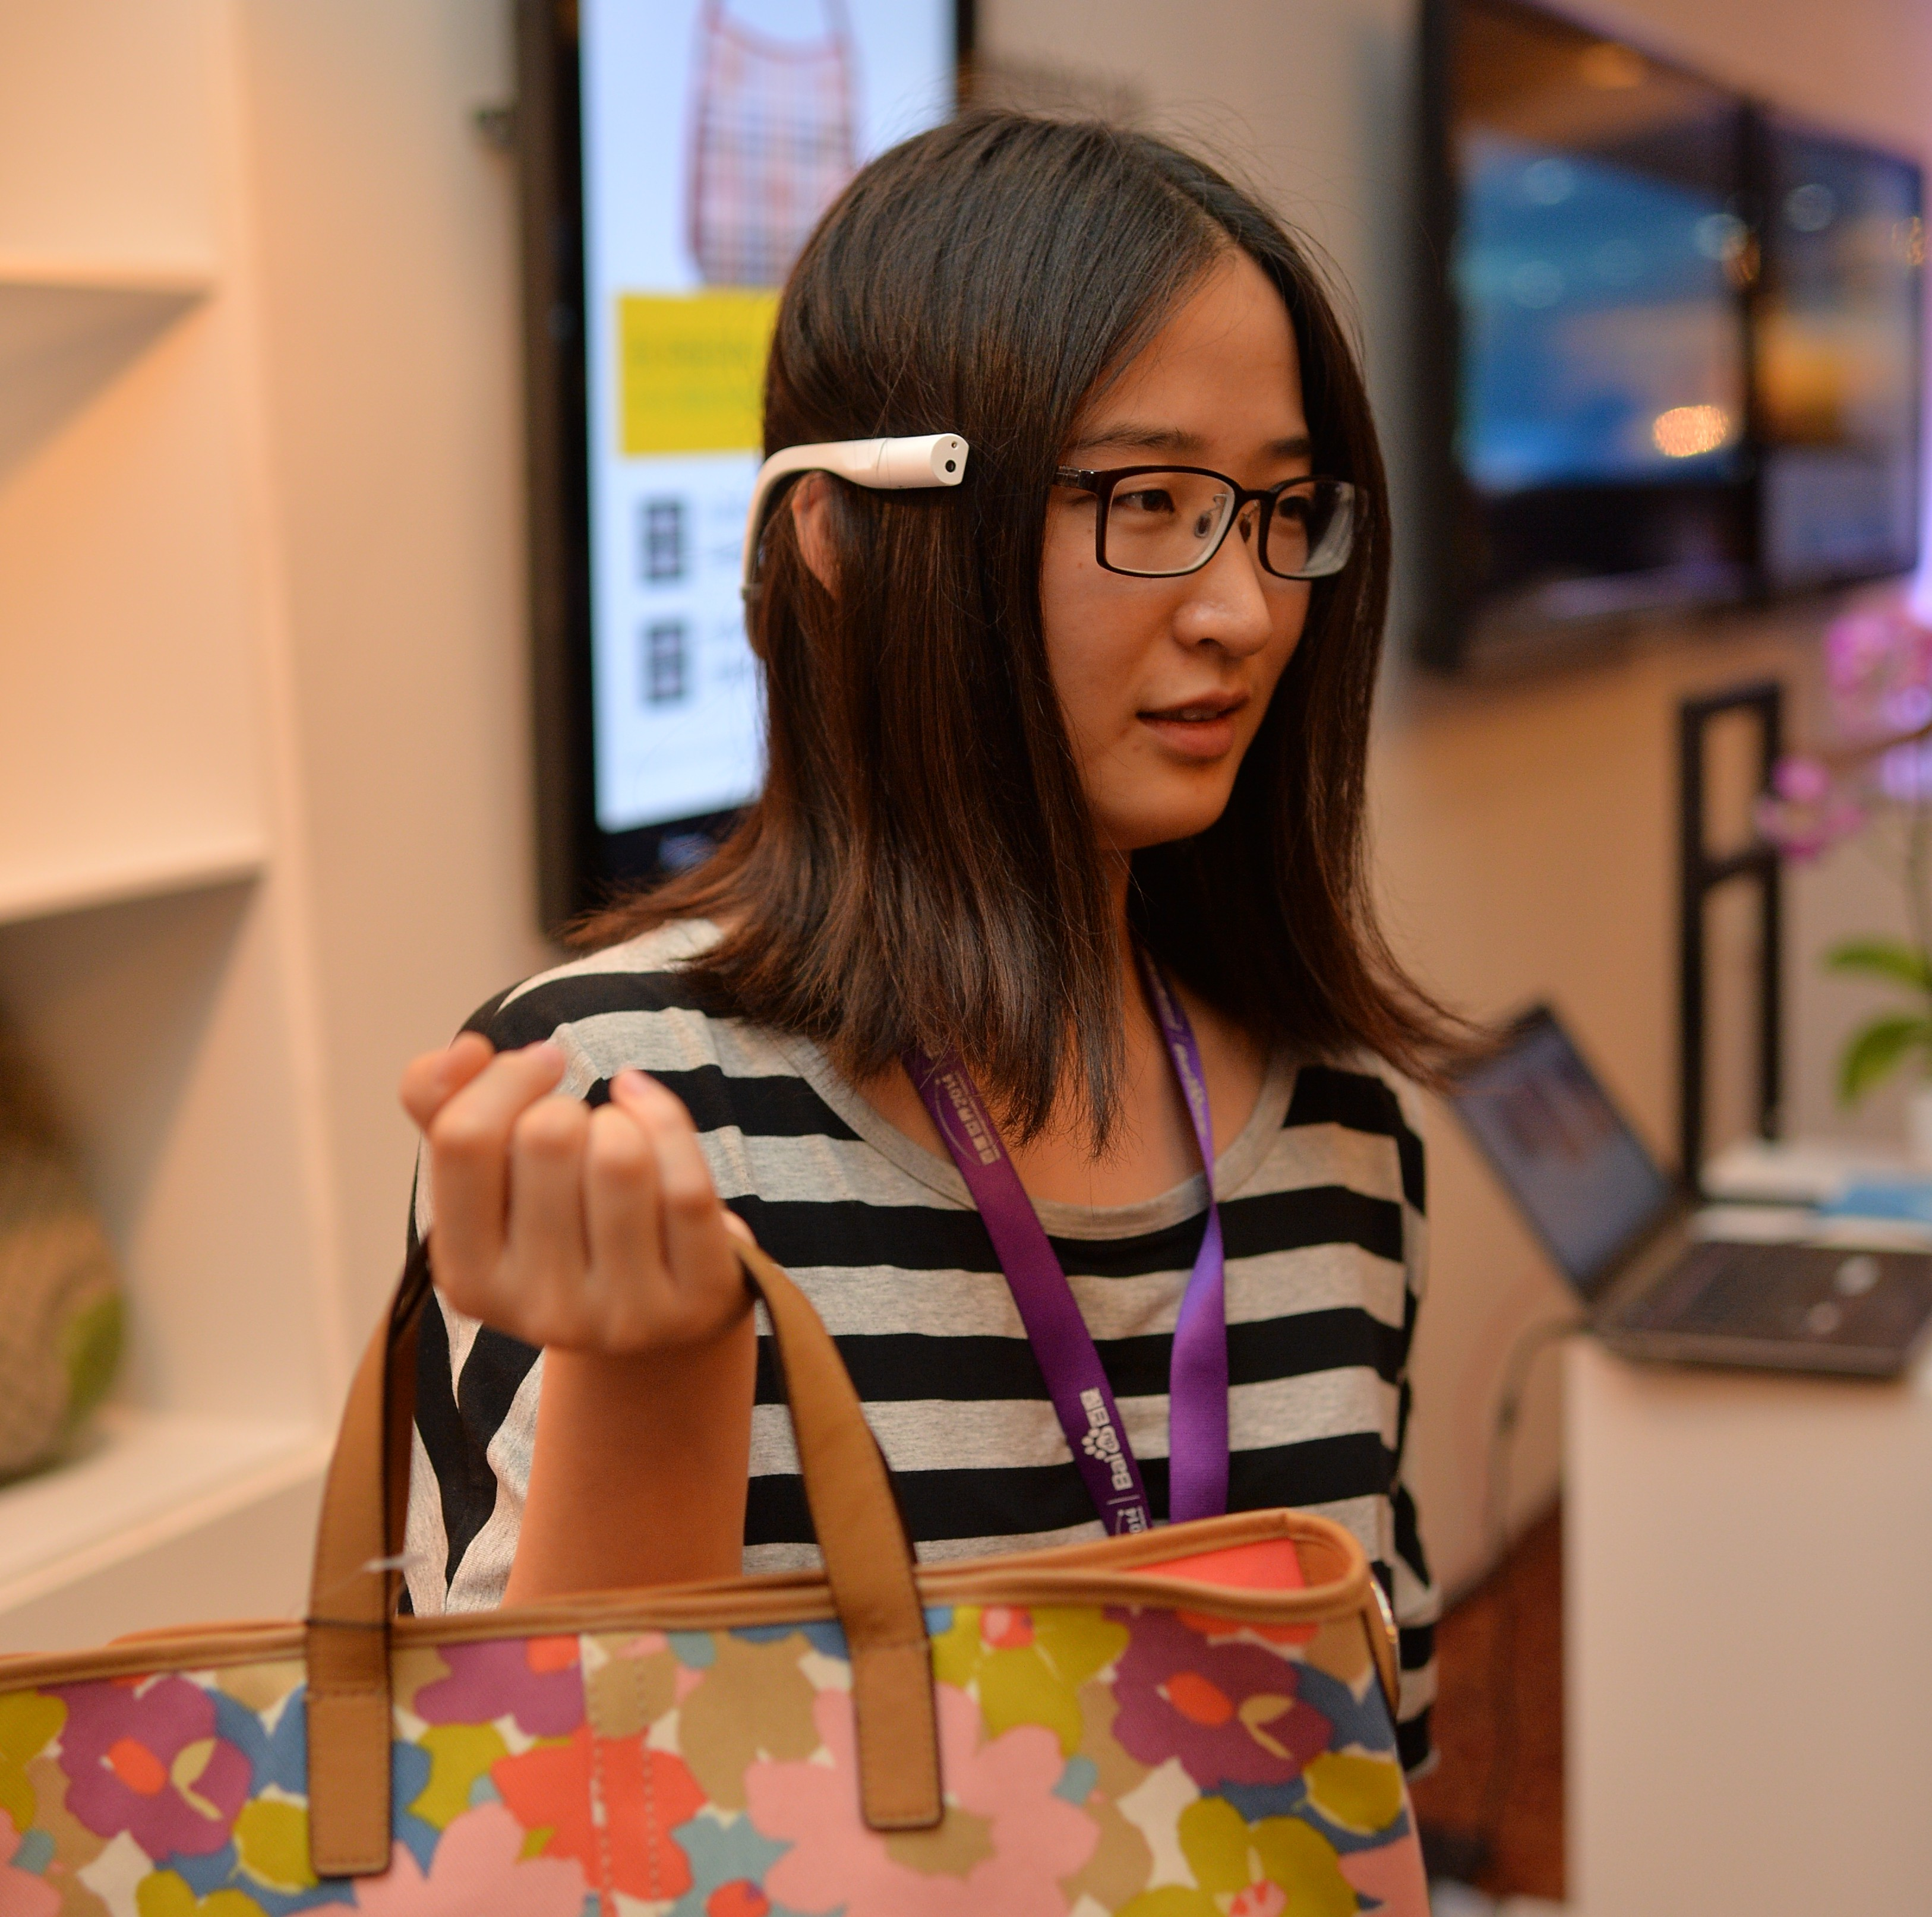 A Baidu World attendee tests out Baidu Eyes ability to recognize handbags. Source: Baidu